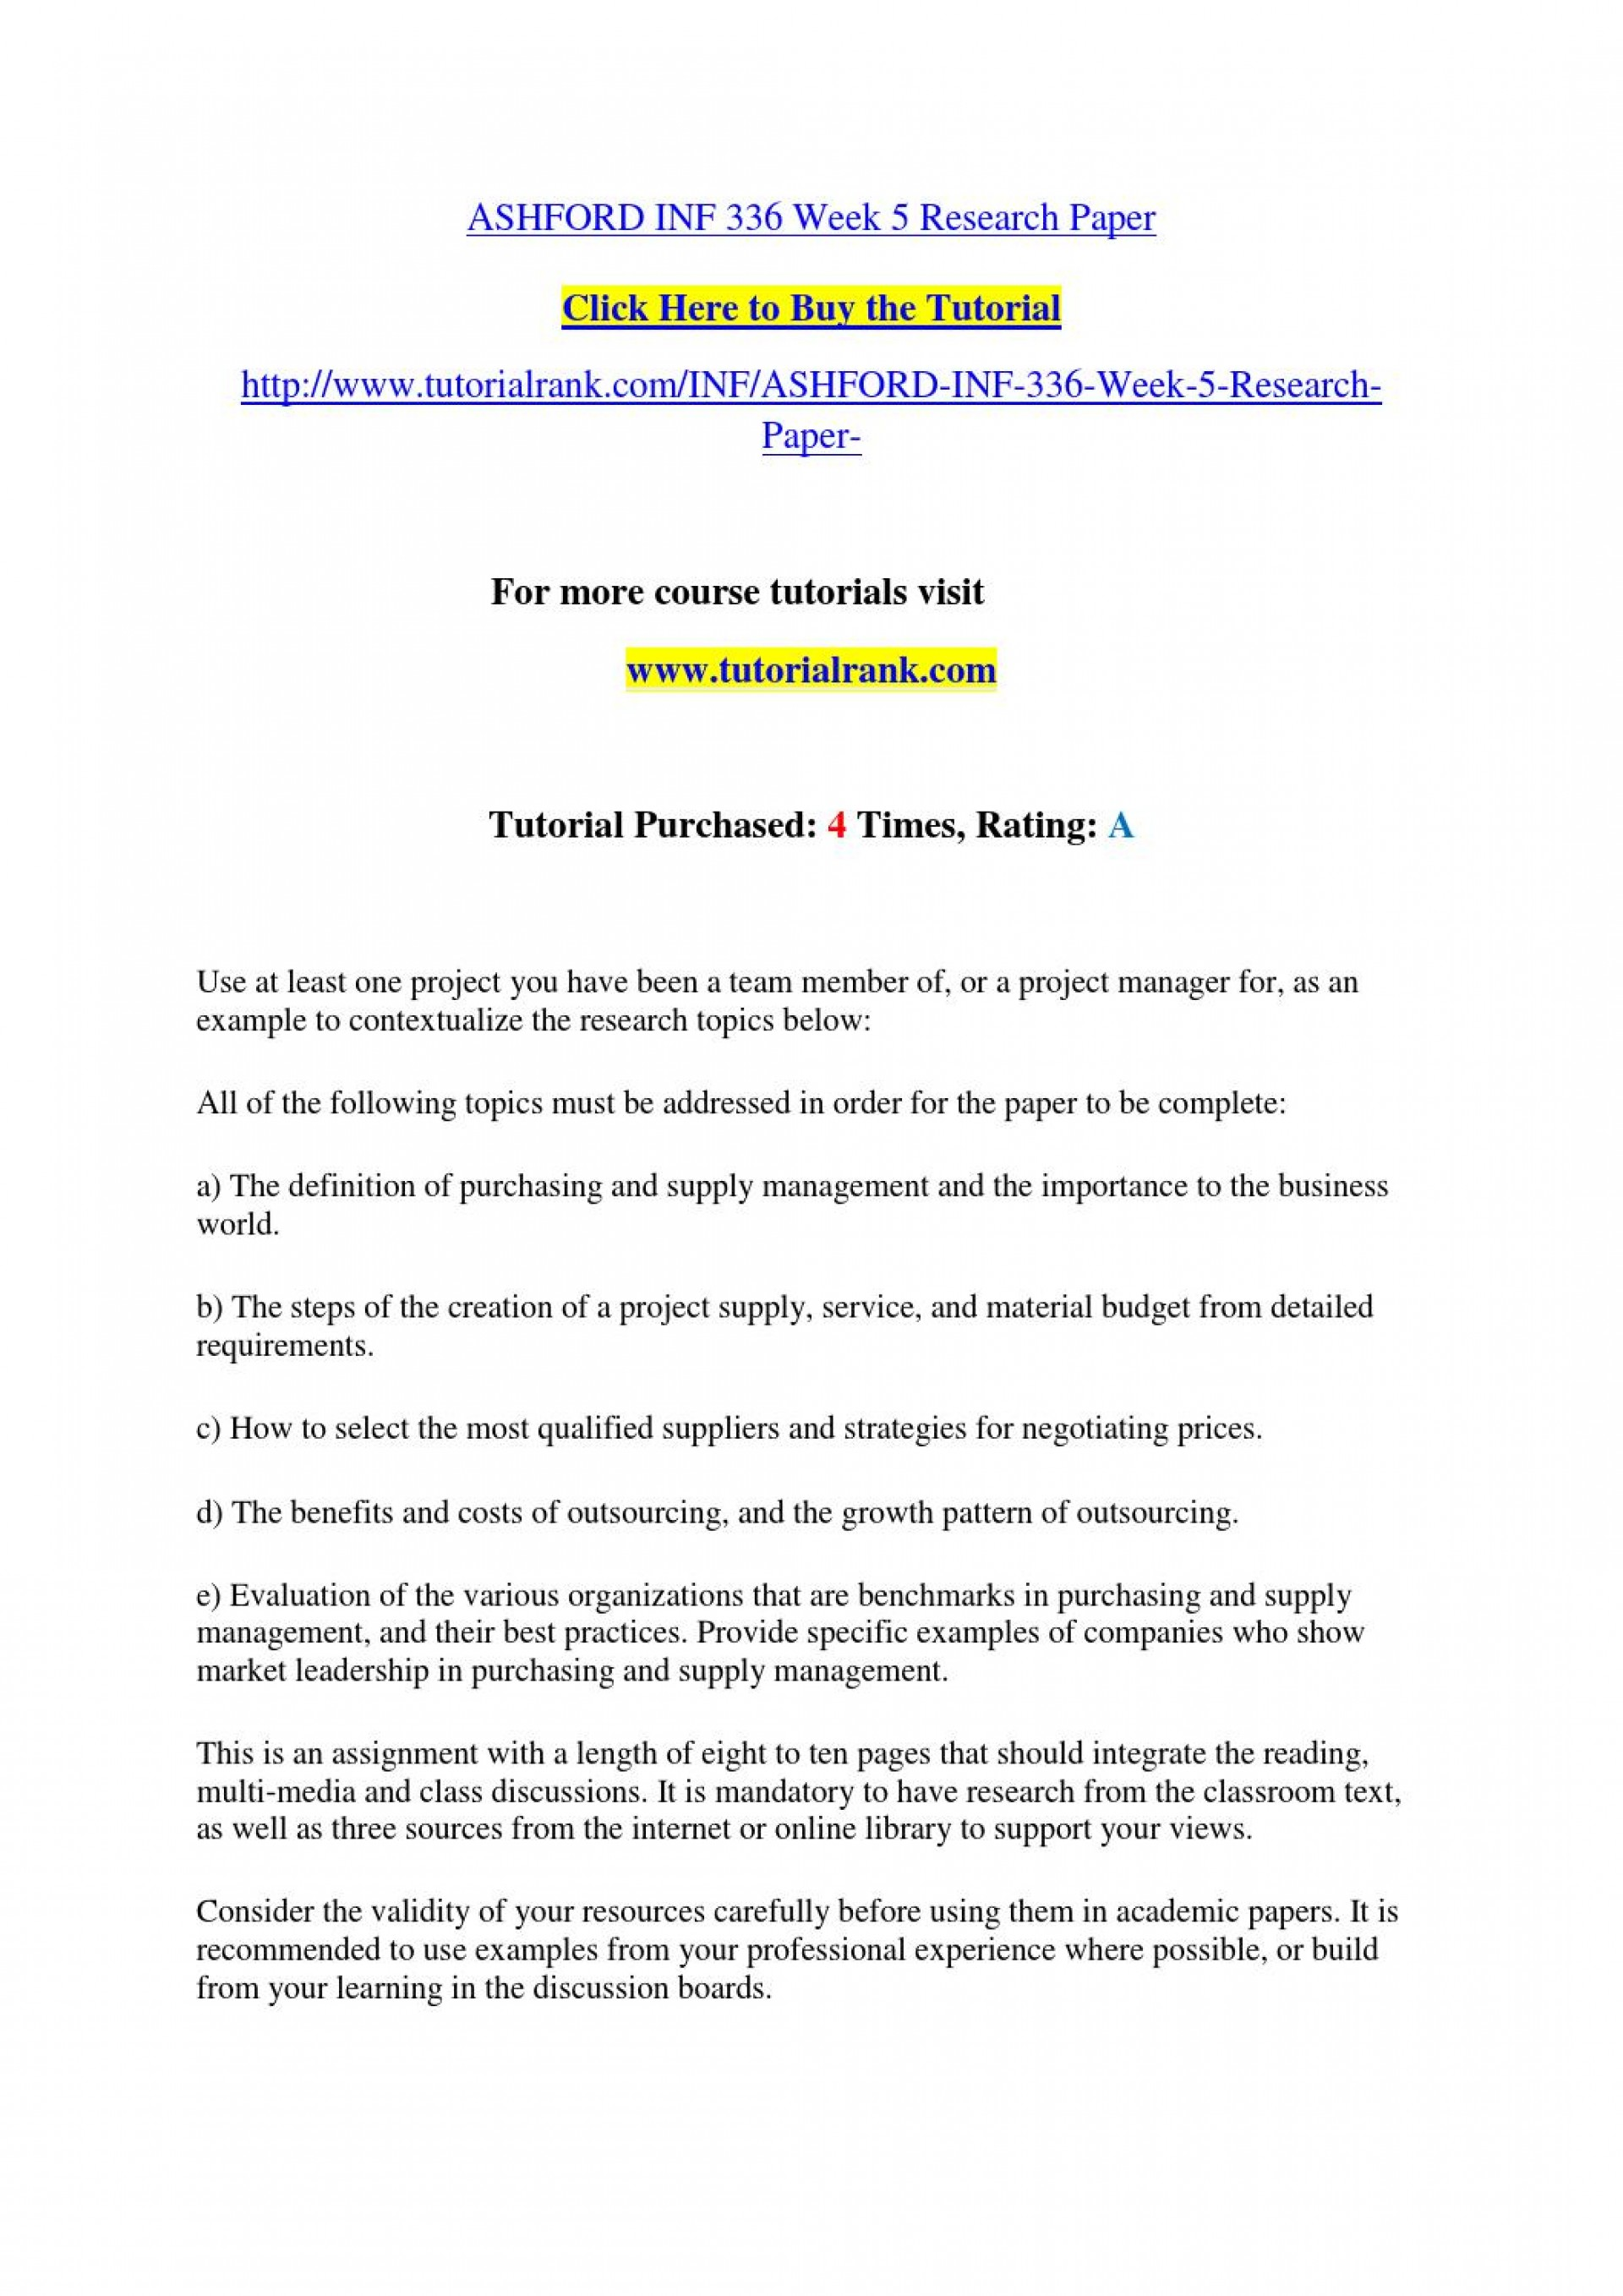 018 Research Paper Business Management Topics For Page 1 Unusual Techniques Pdf 1920